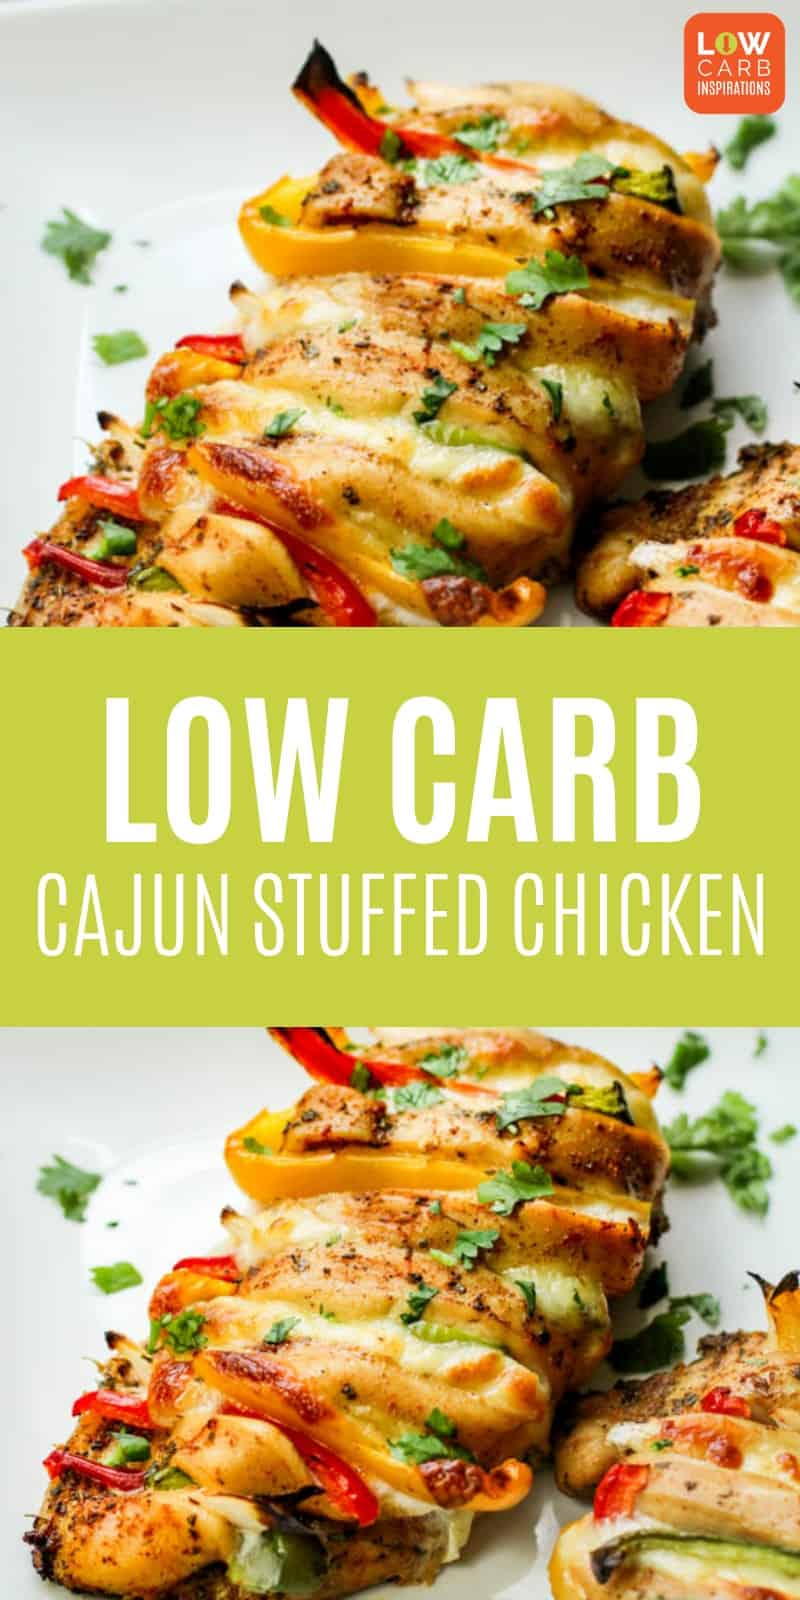 This low carb cajun stuffed chicken recipe tastes delicious and can be on the table in about 30 minutes. Serve this easy dinner idea with a salad and enjoy!